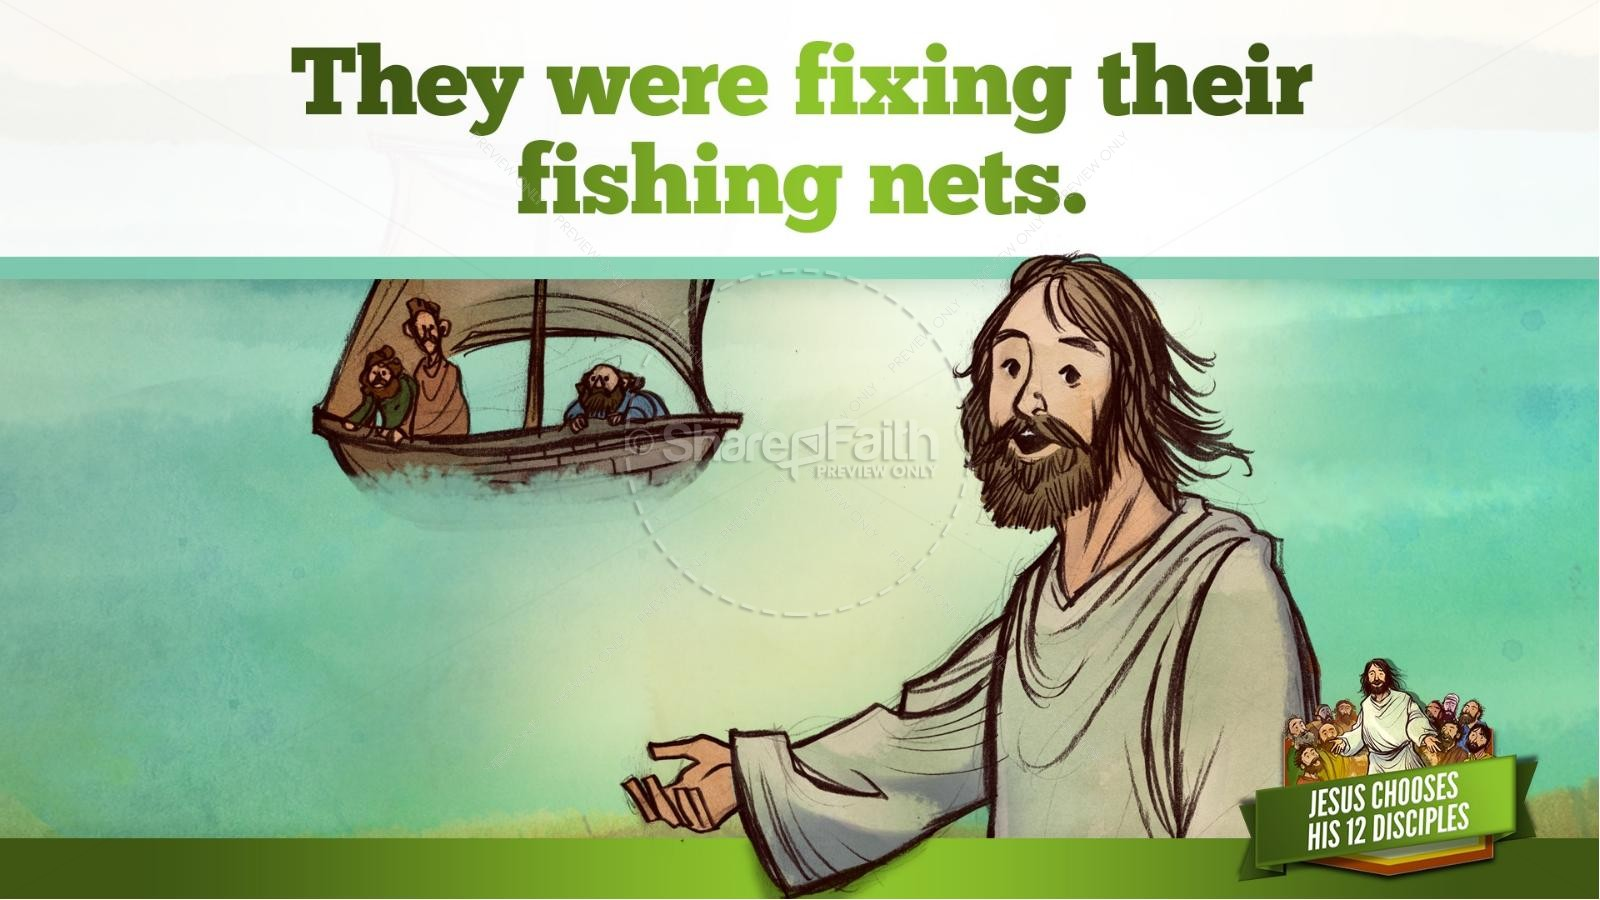 Jesus Chooses His 12 Disciples Kids Bible Story | slide 19